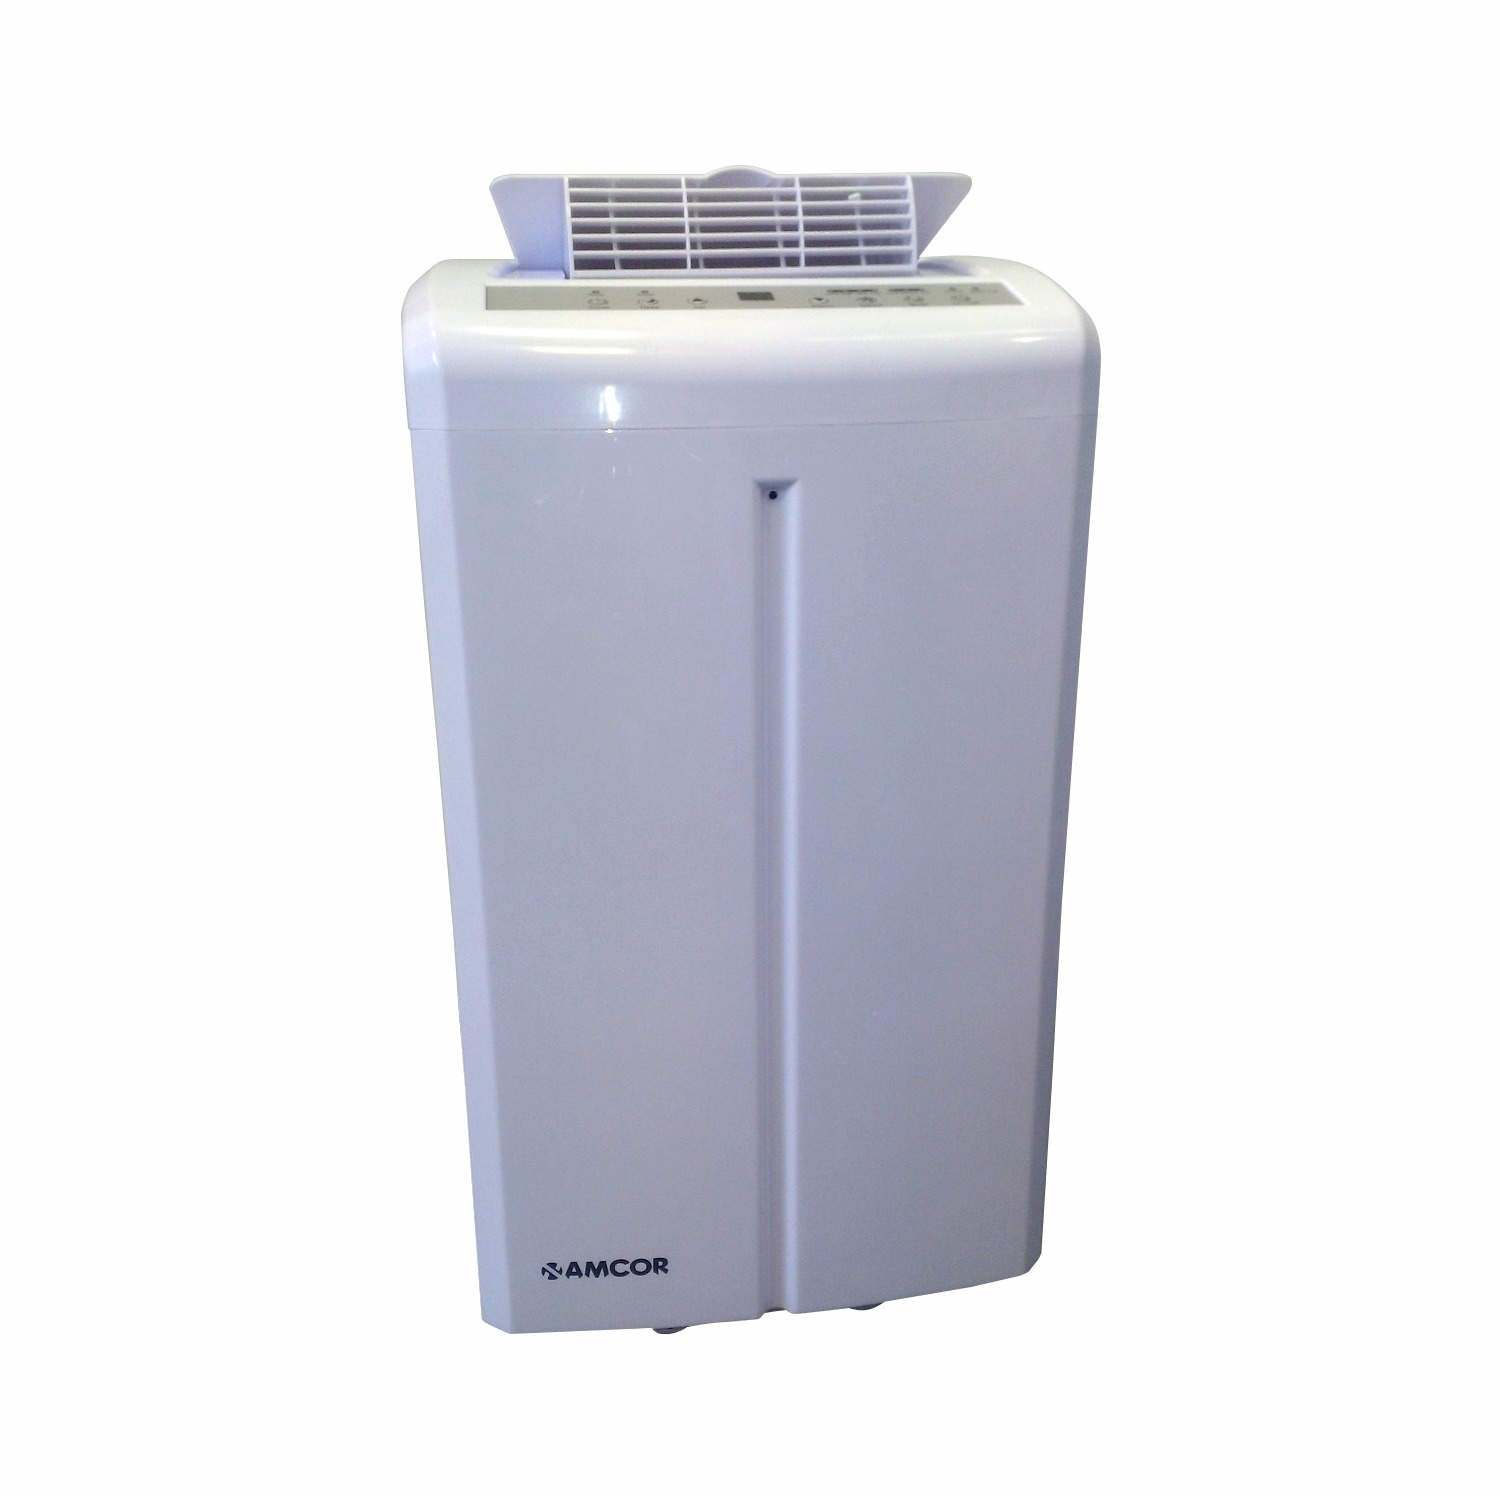 Delicieux Amcor 16000 BTU Portable Air Conditioner For Rooms Up To 42 Sqm